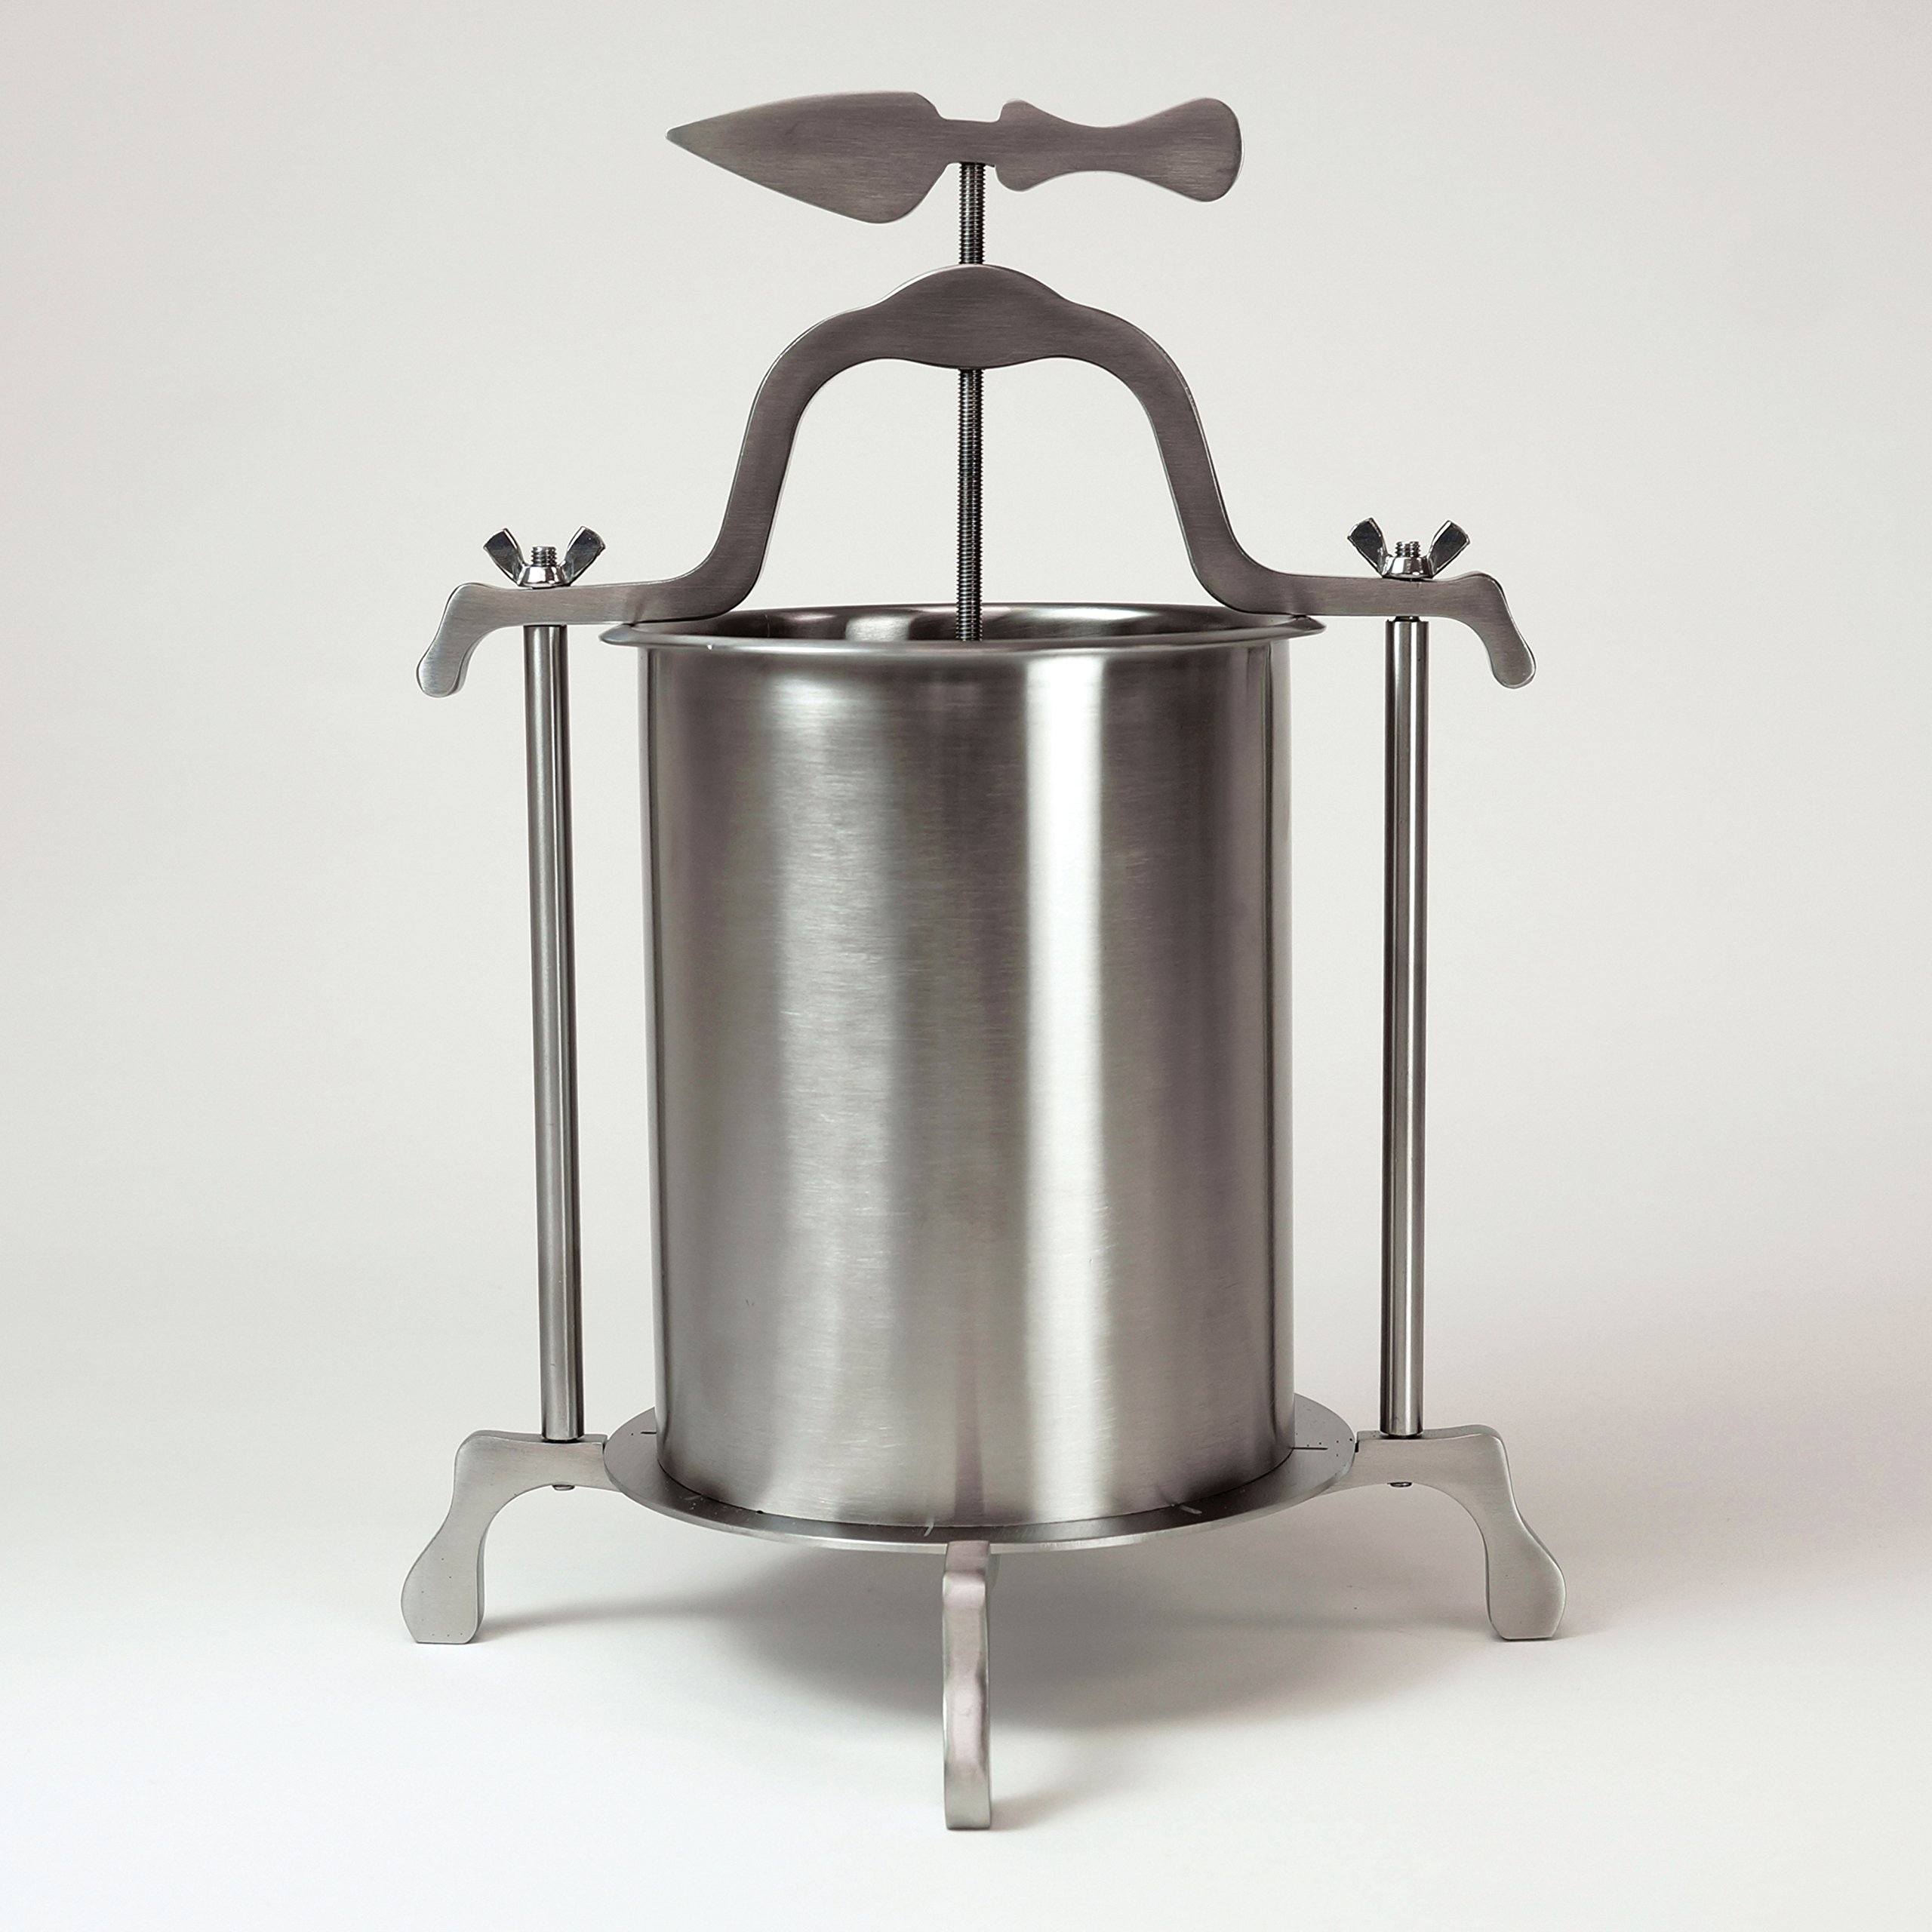 Whey Station Stainless Steel Cheese Press for Home Cheese Making by Creamery In A Box